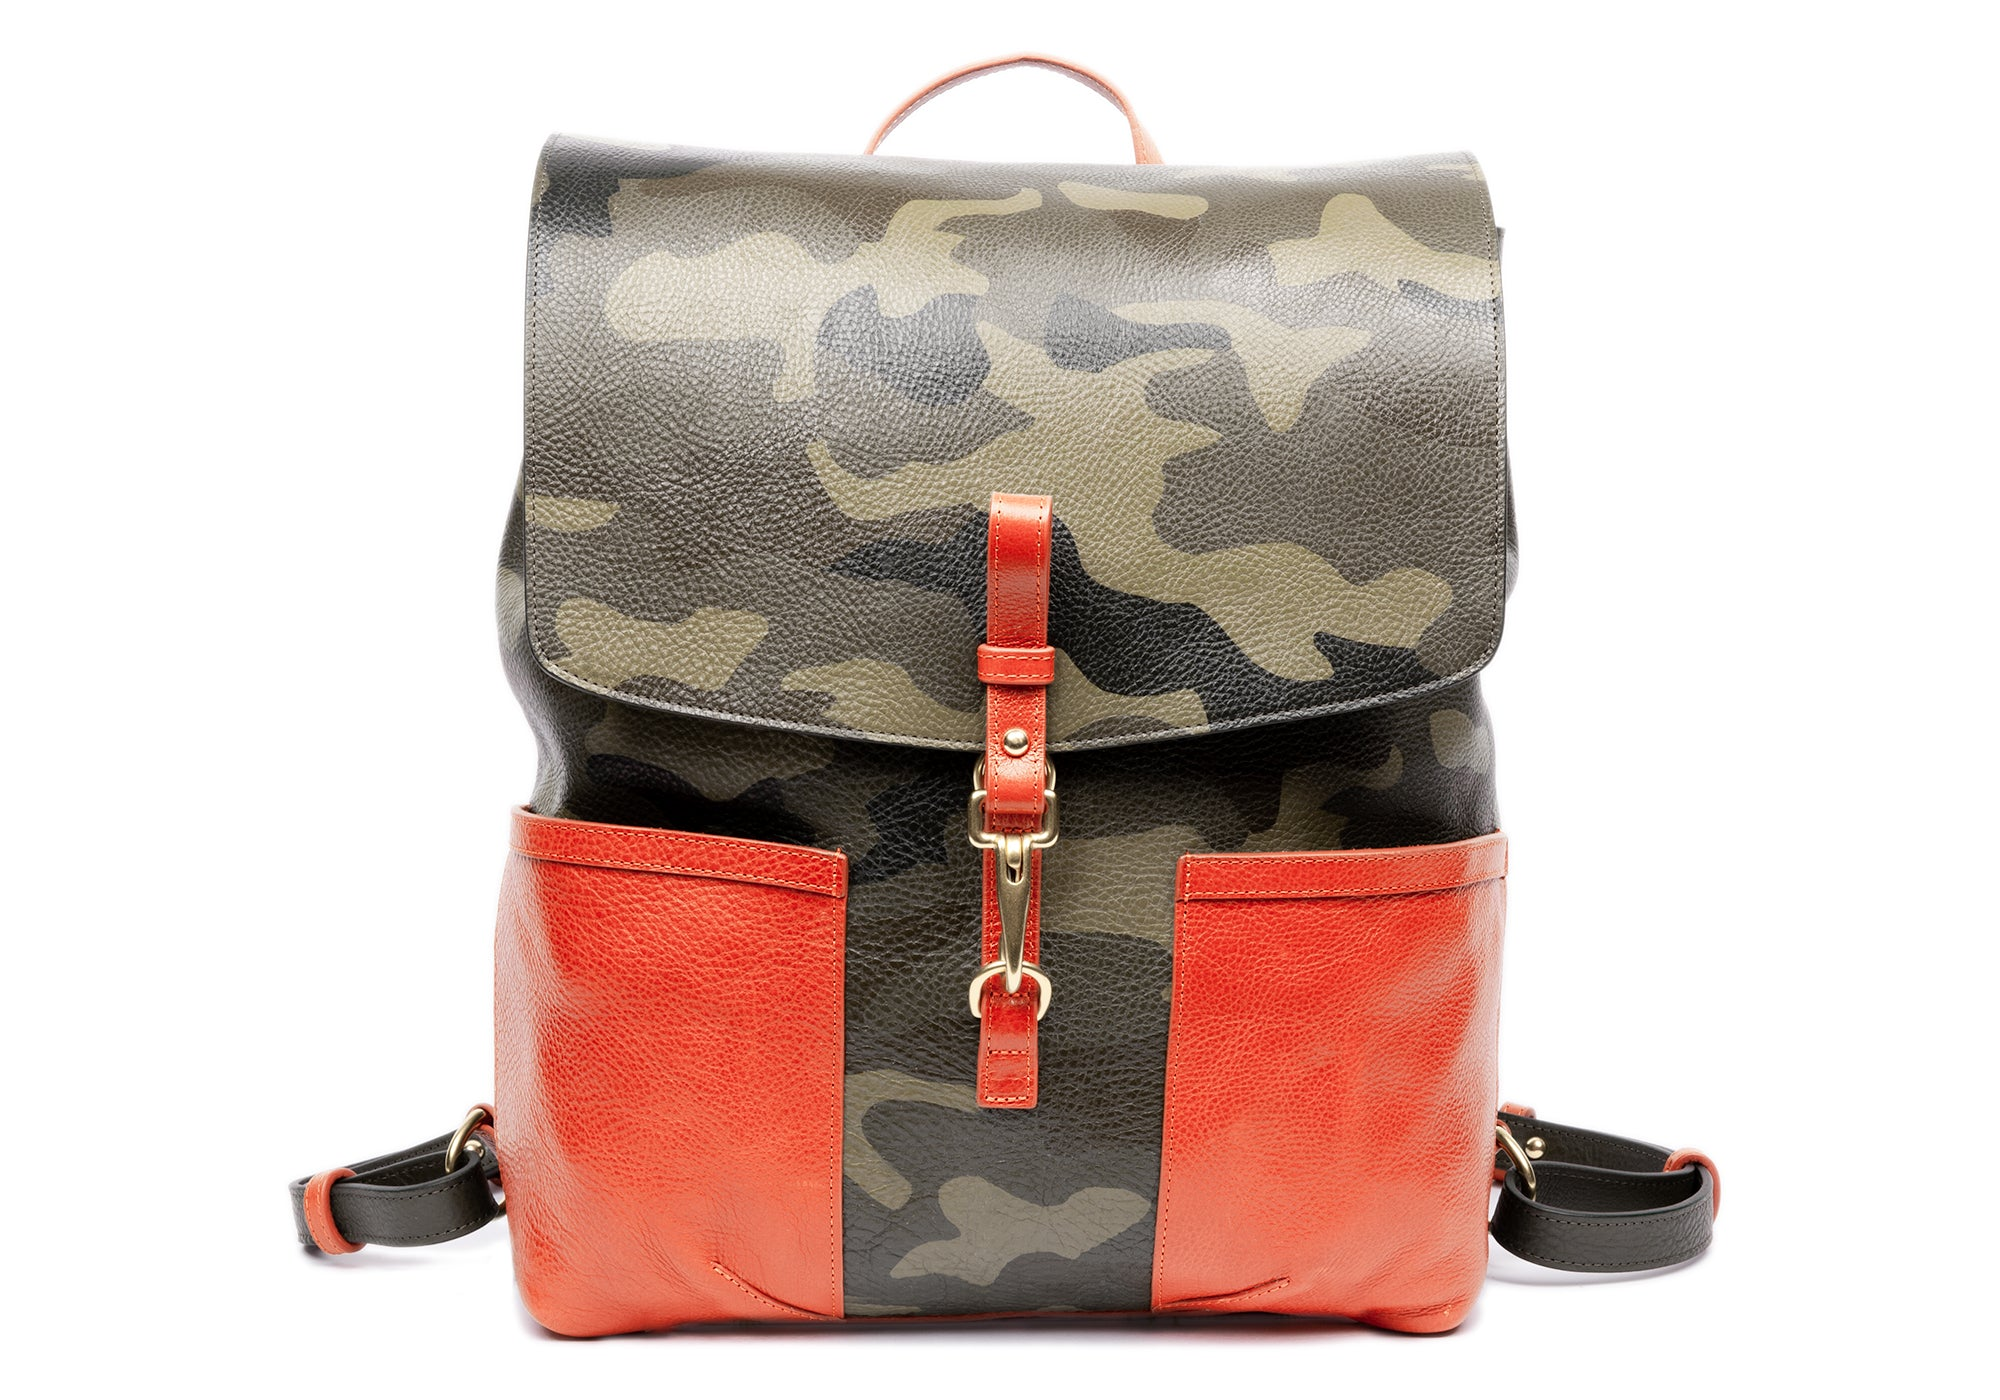 The Handpainted Leather Knapsack Olive